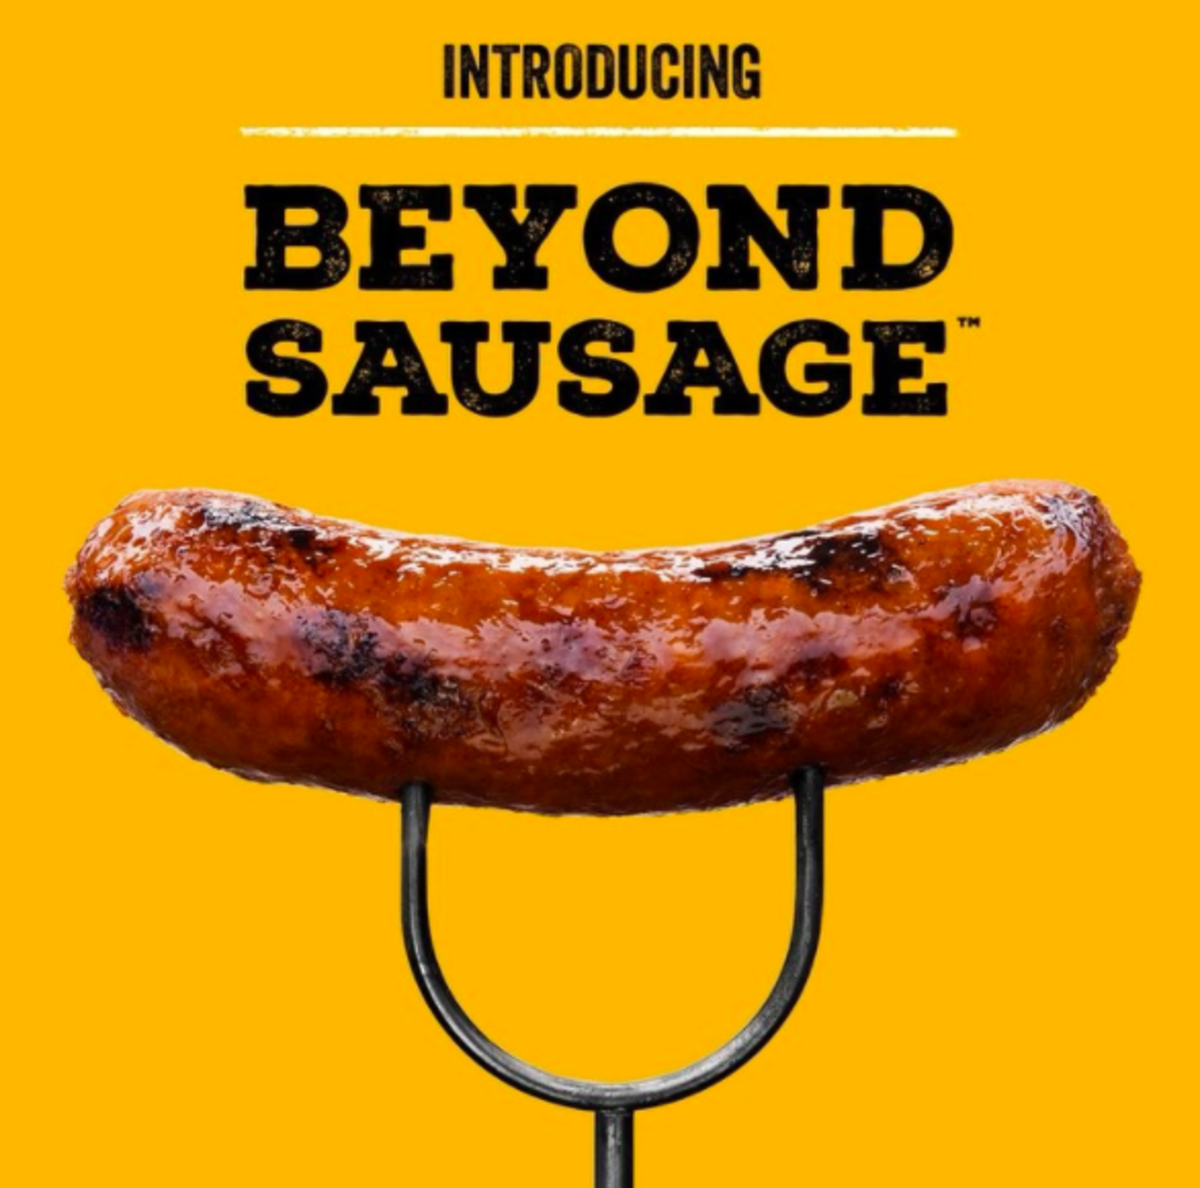 Beyond Meat Announces Launch of Beyond Sausage, a 'Revolutionary Plant-Based Breakthrough'